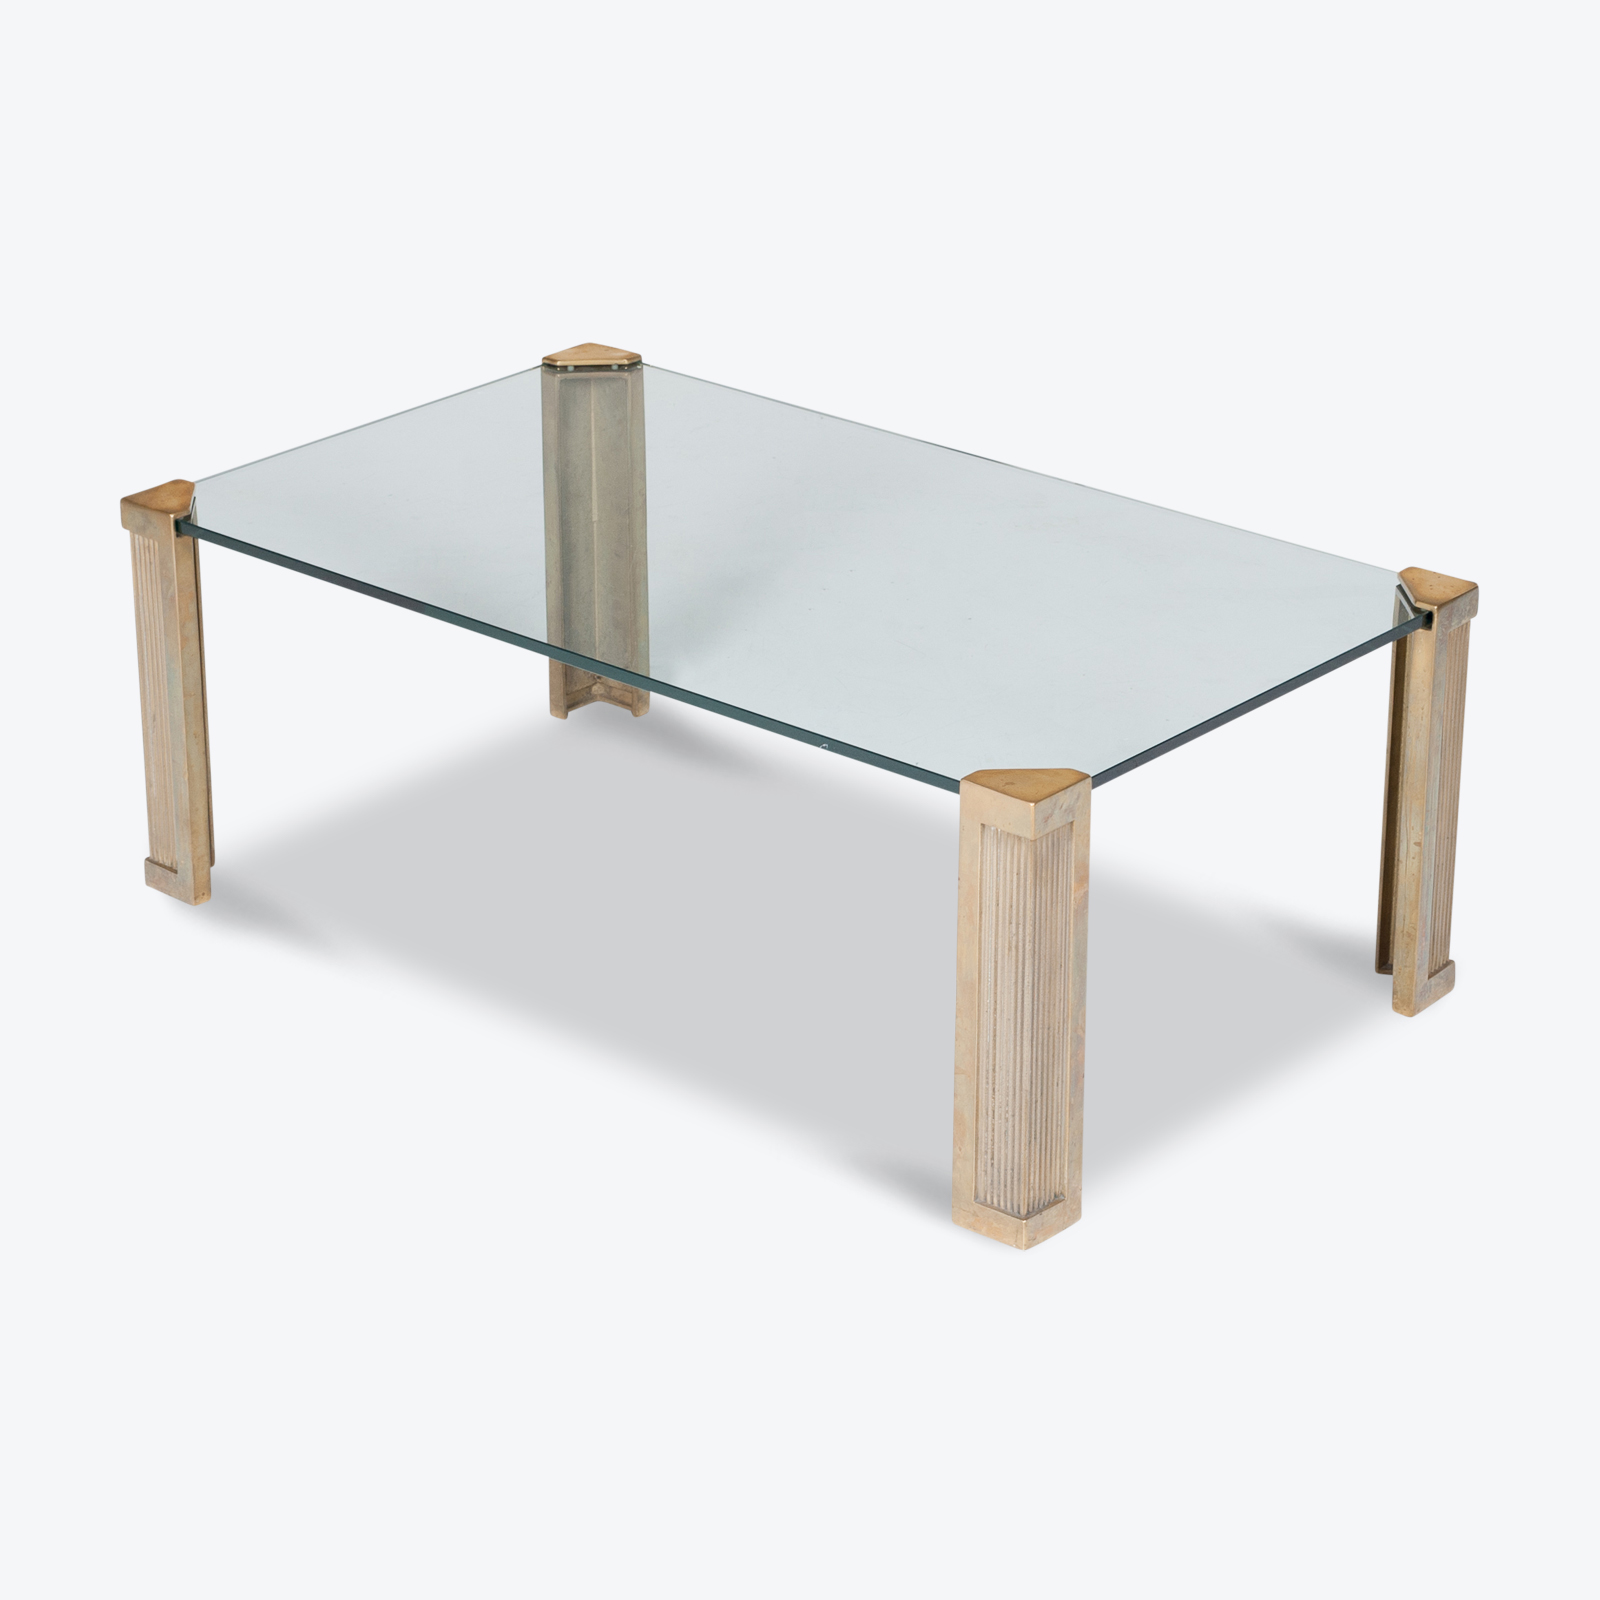 Rectangular Coffee Table In Brass And Glass By Peter Ghyczy, 1970s, The Netherlands Hero